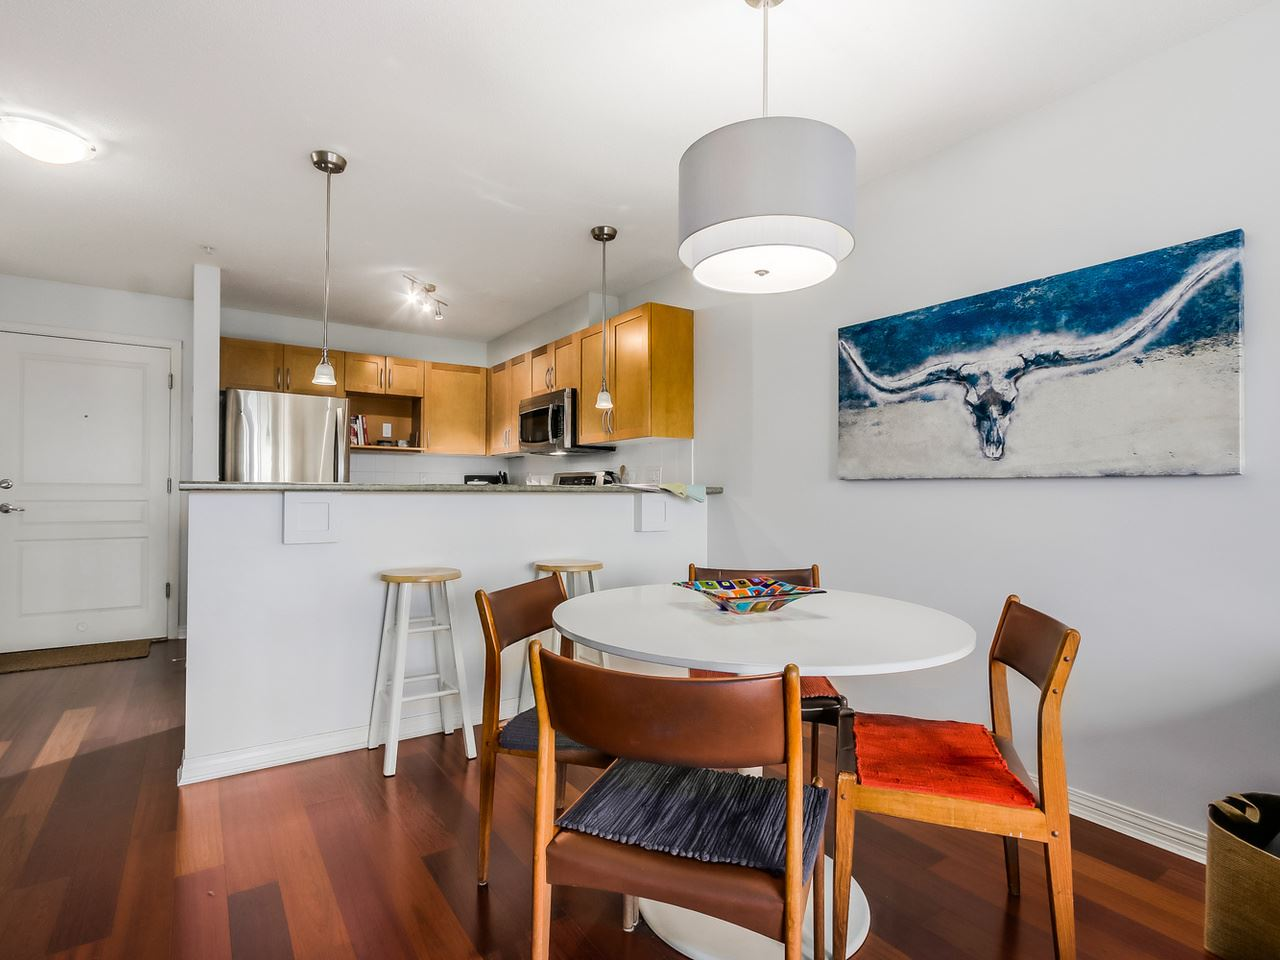 Photo 8: 109 333 E 1ST STREET in North Vancouver: Lower Lonsdale Condo for sale : MLS® # R2032321